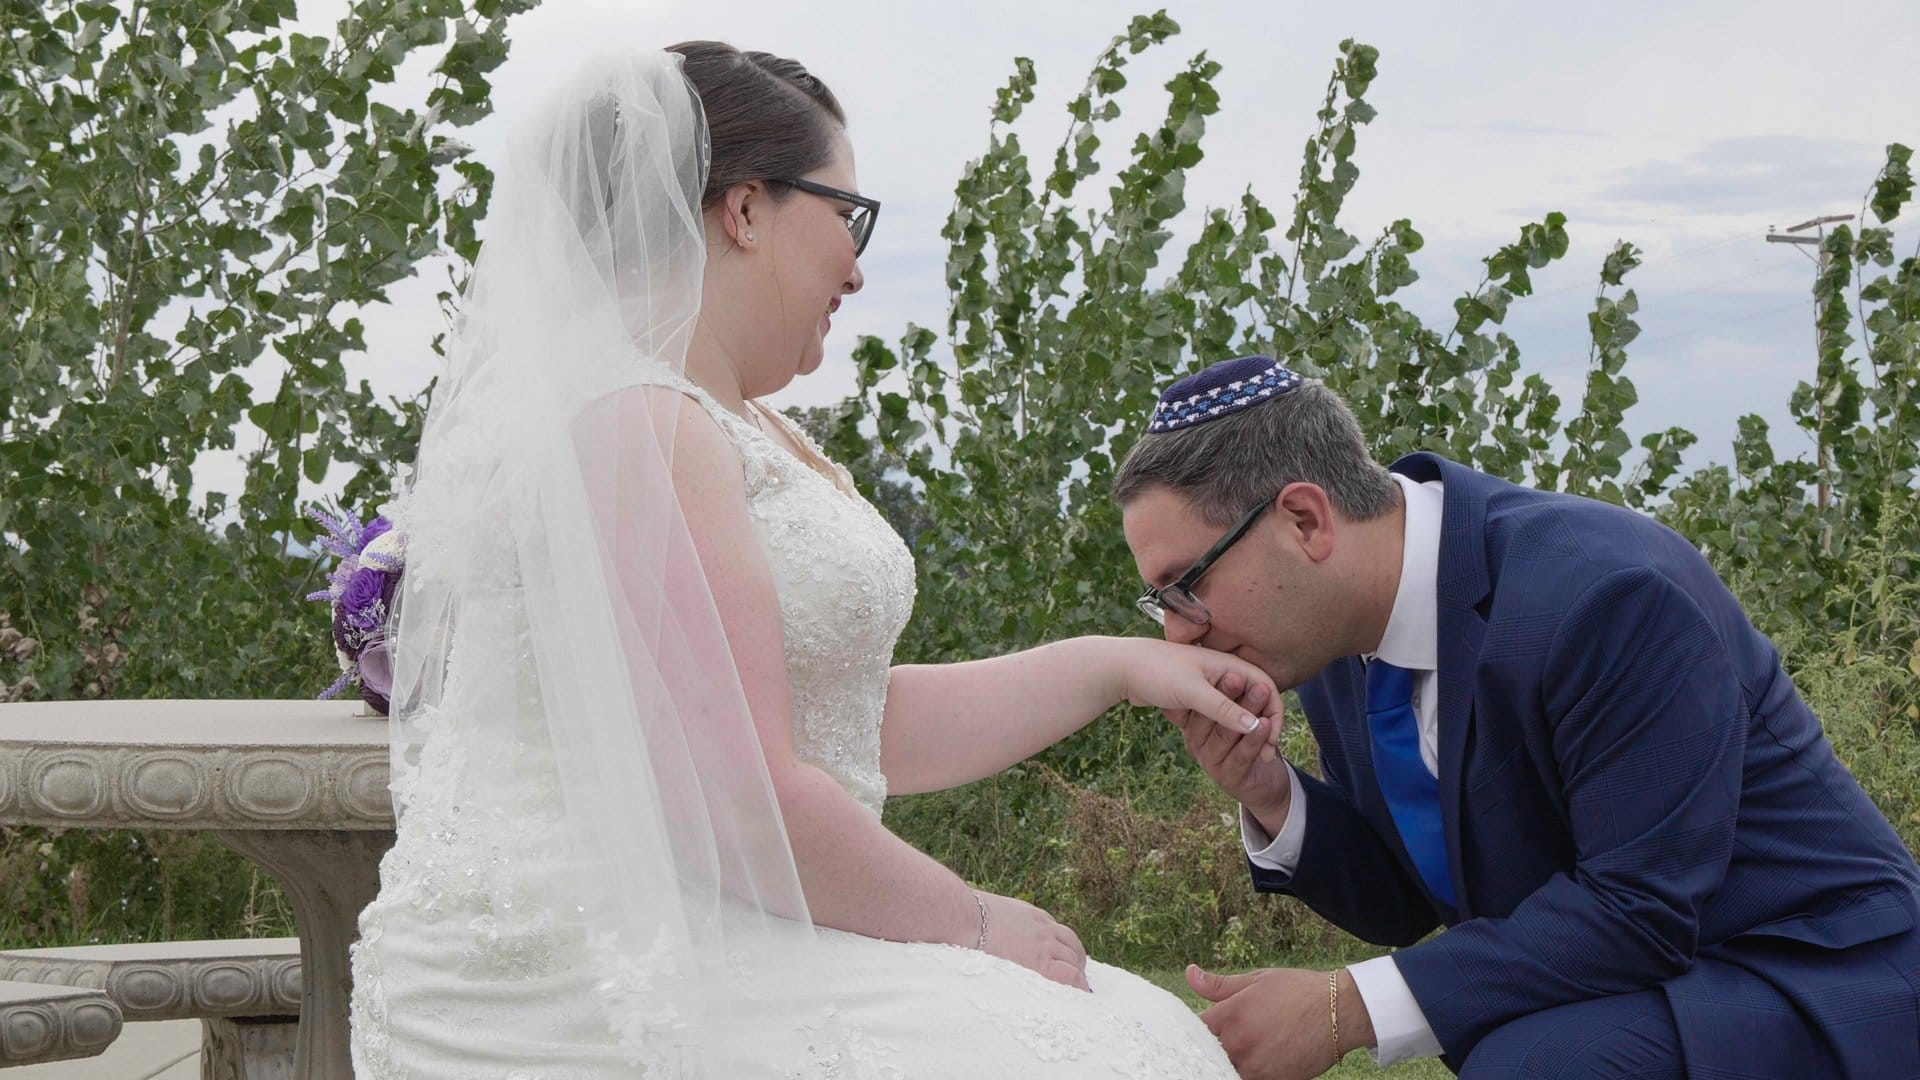 Joshua Jamie Jewish Wedding The Wellshire Event Center Denver